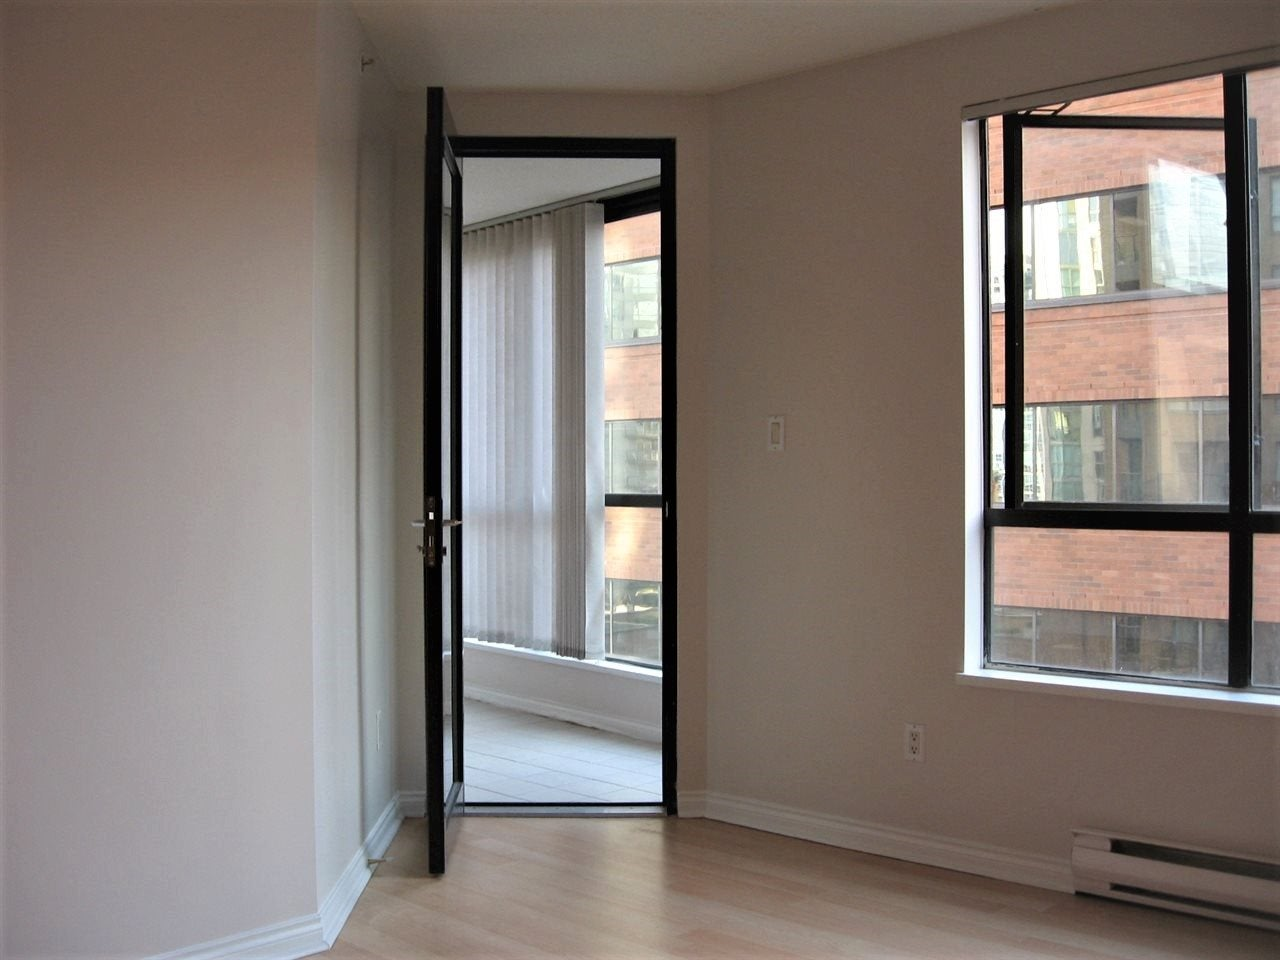 801 1189 HOWE STREET - Downtown VW Apartment/Condo for sale, 1 Bedroom (R2423012) - #3